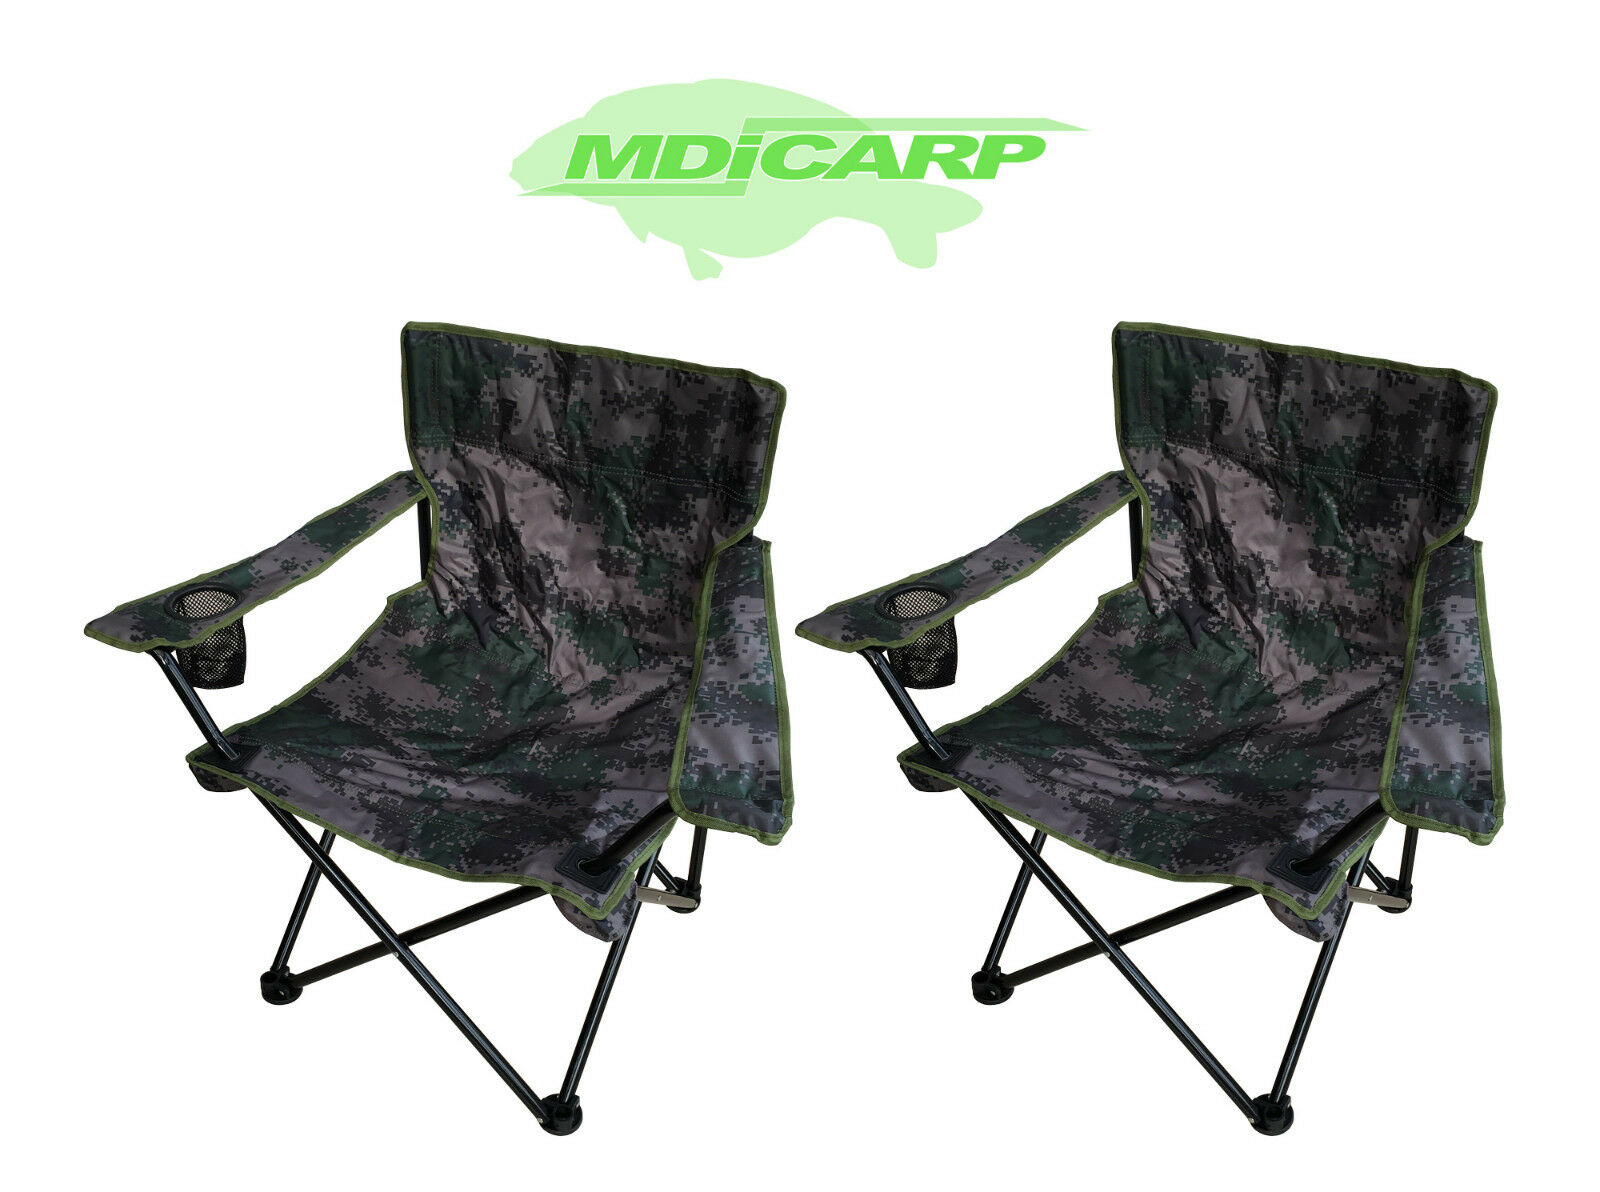 2 MDI Carp Folding Camping Camouflage Chairs for Camping, Walking & Fishing